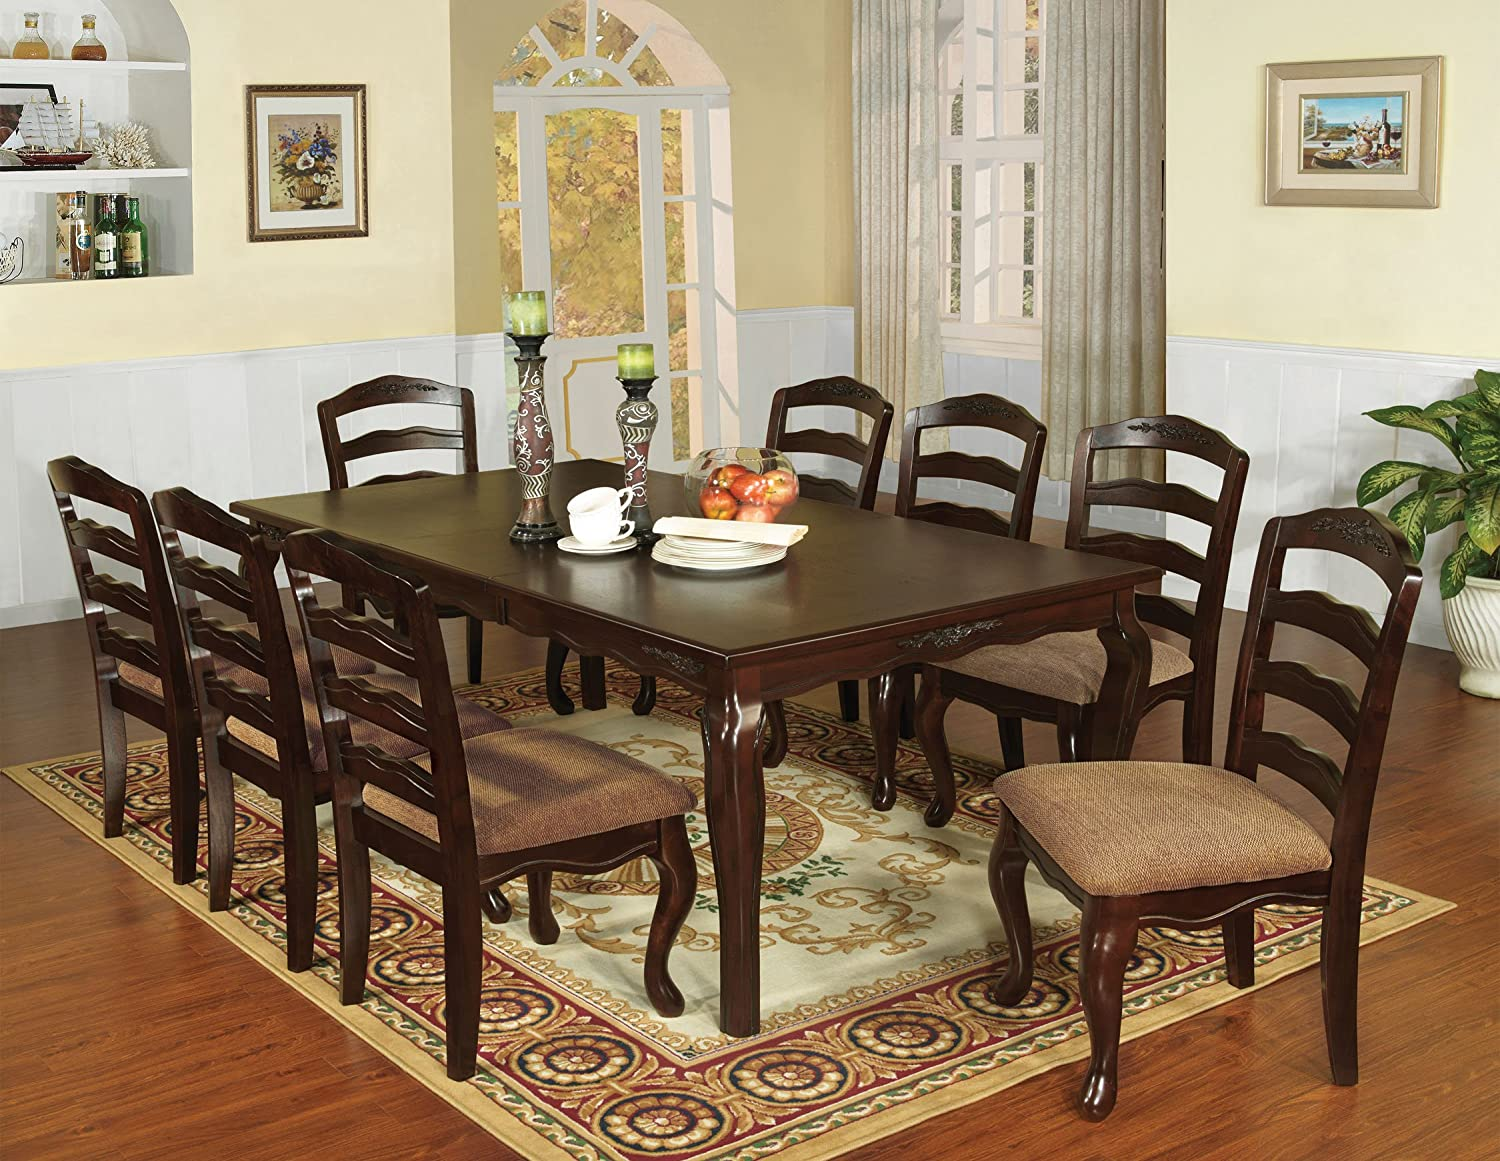 Amazon com furniture of america kathryn classic style dining table with 18 inch leaf dark walnut finish tables